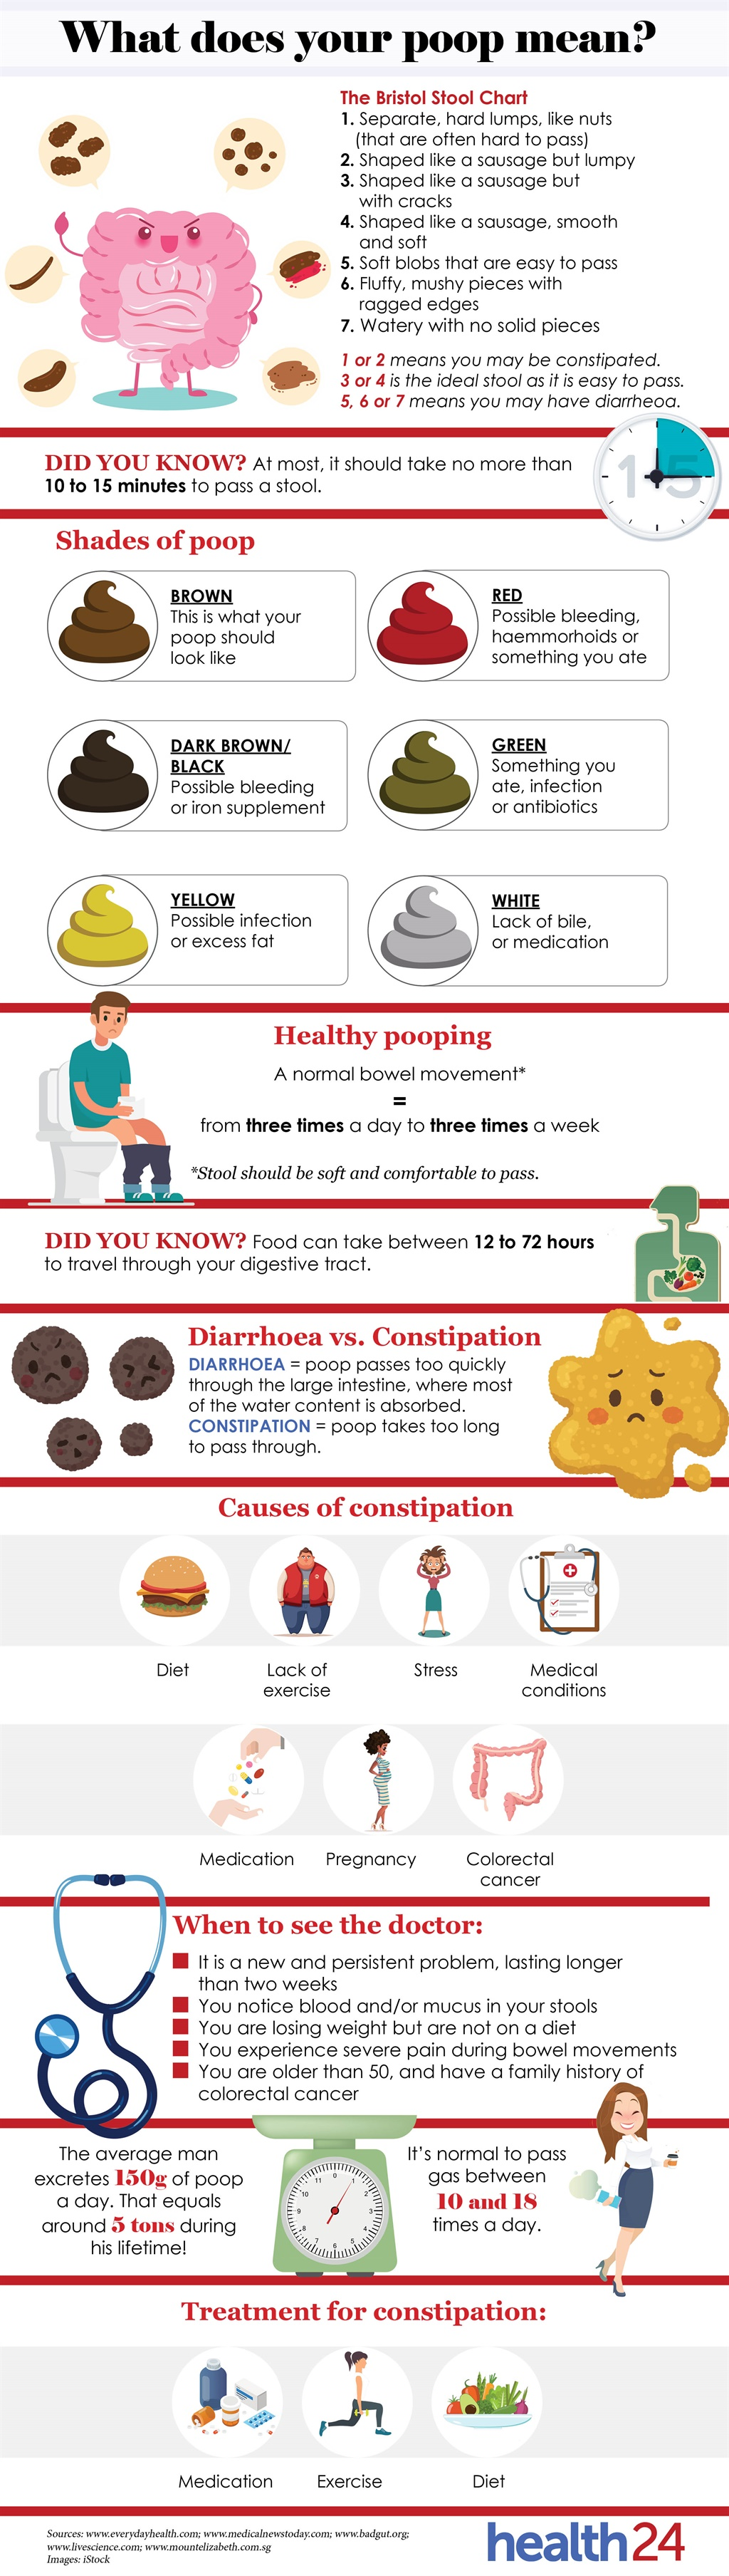 What's your poop telling you? | Health24